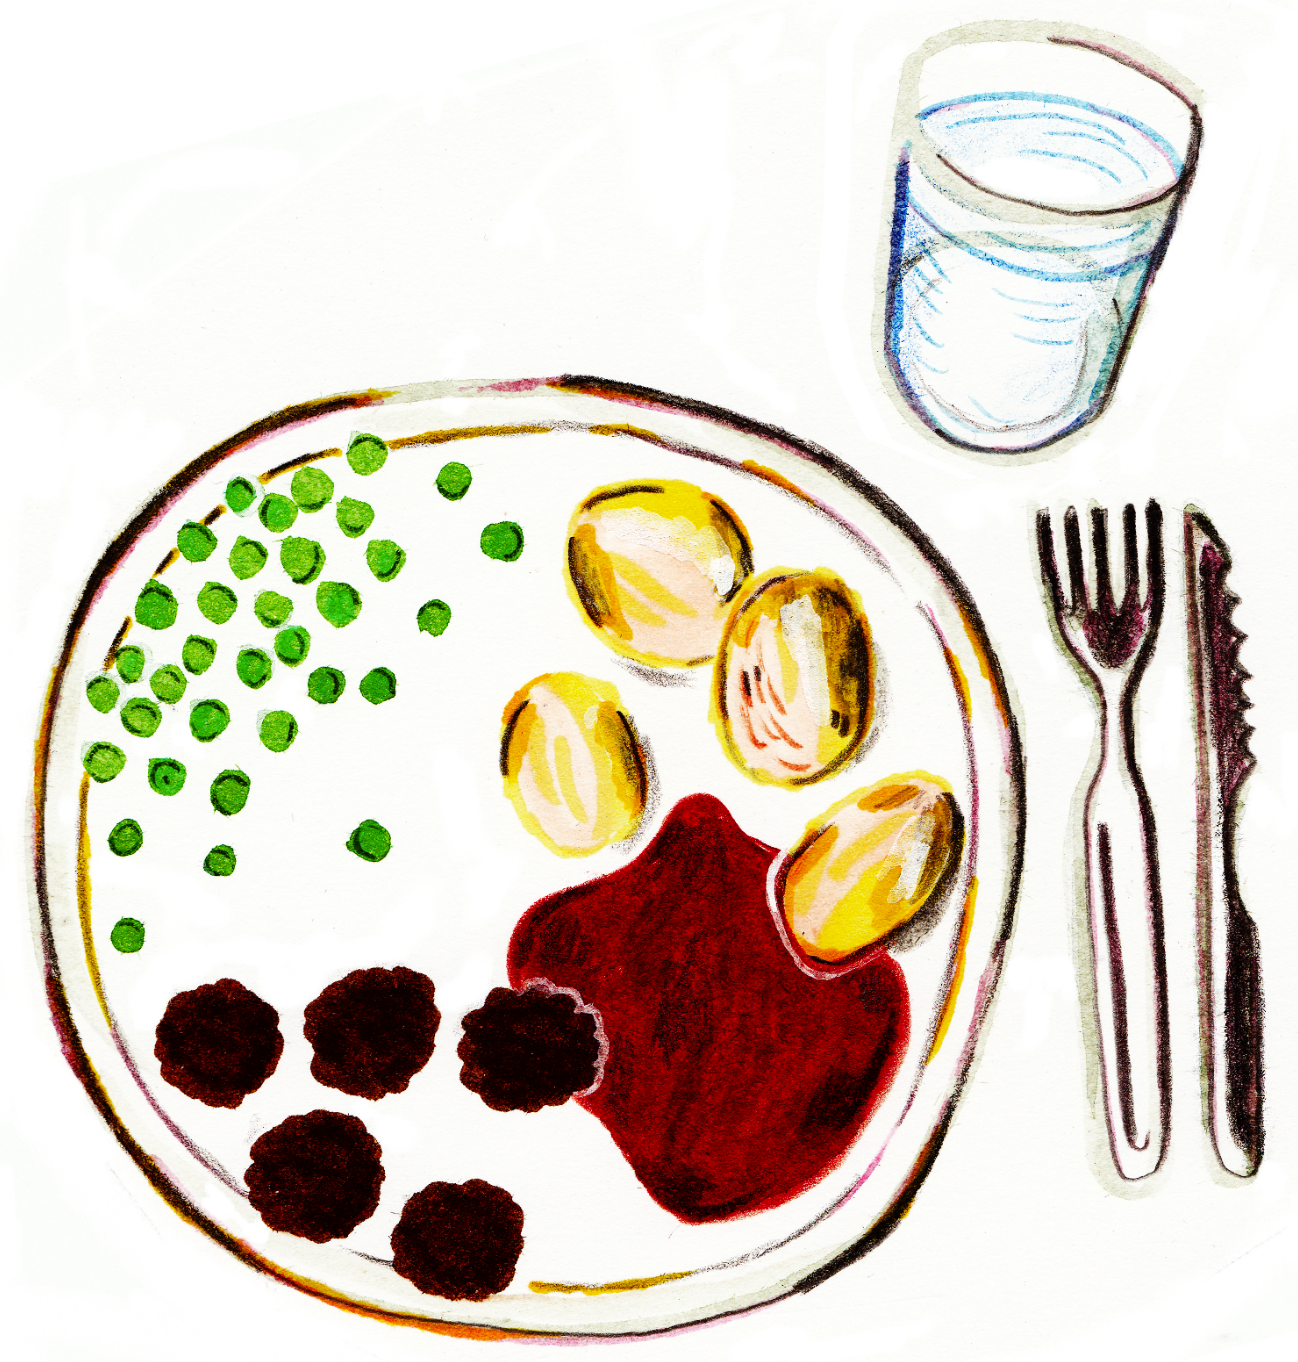 For an article about a study about nutrition aid at care homes.